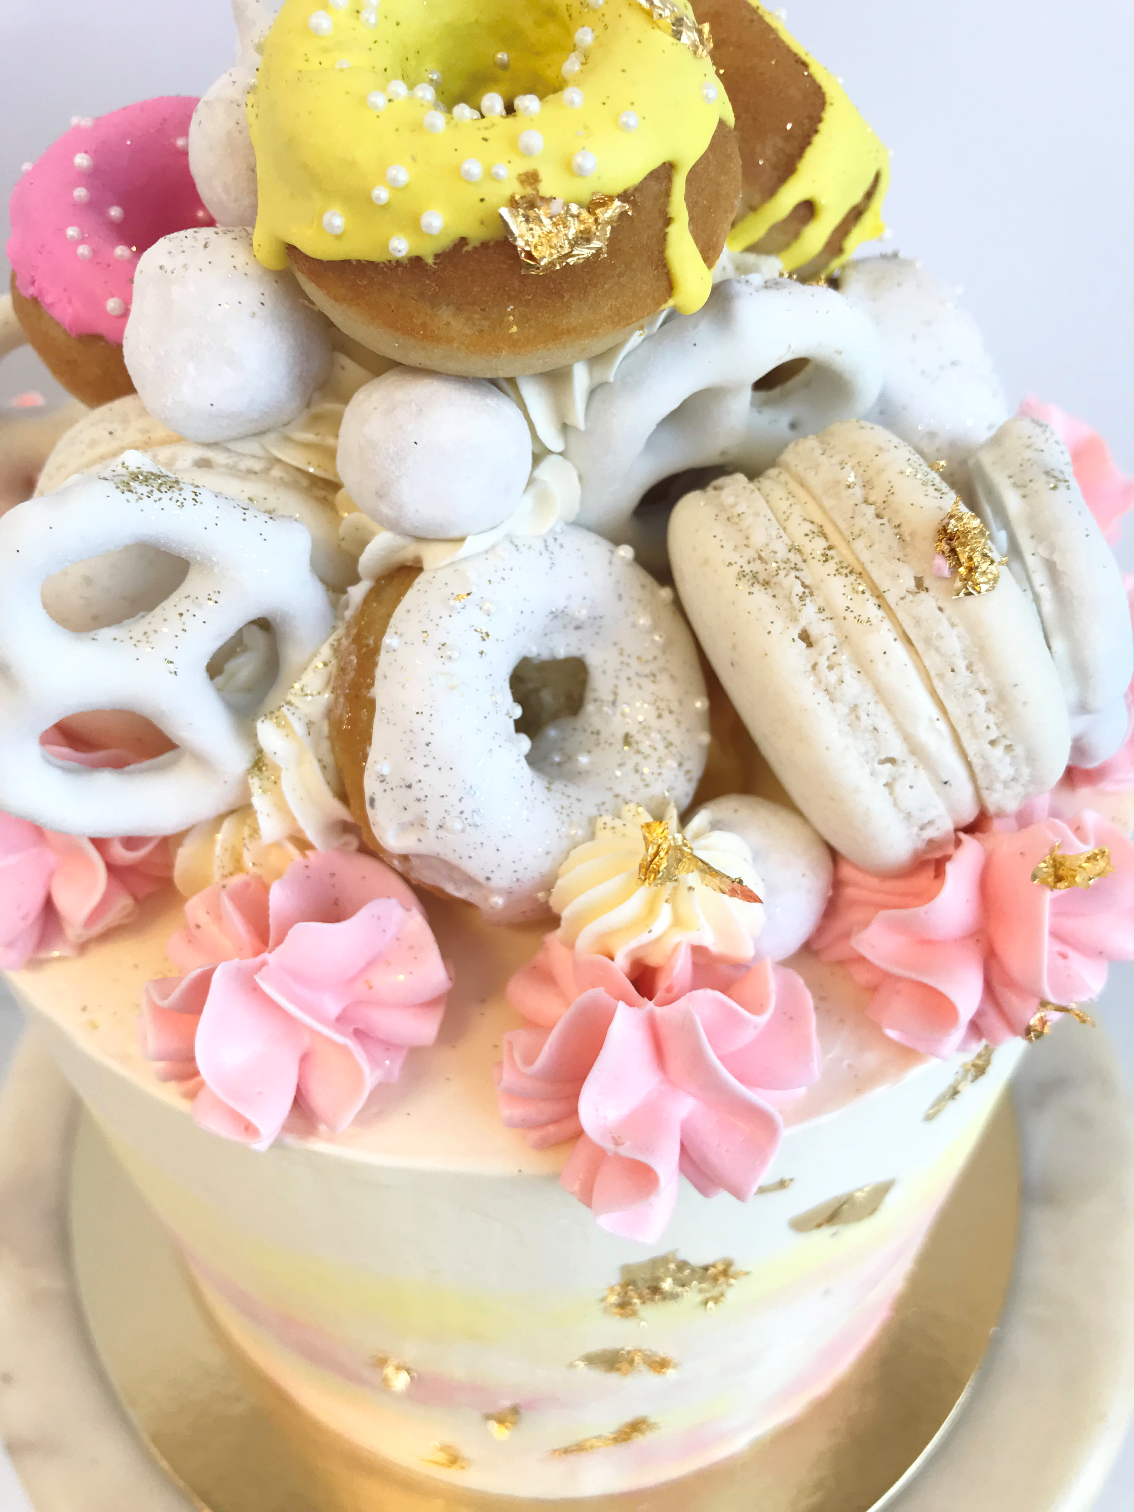 Whippt Desserts - fully loaded cake2b